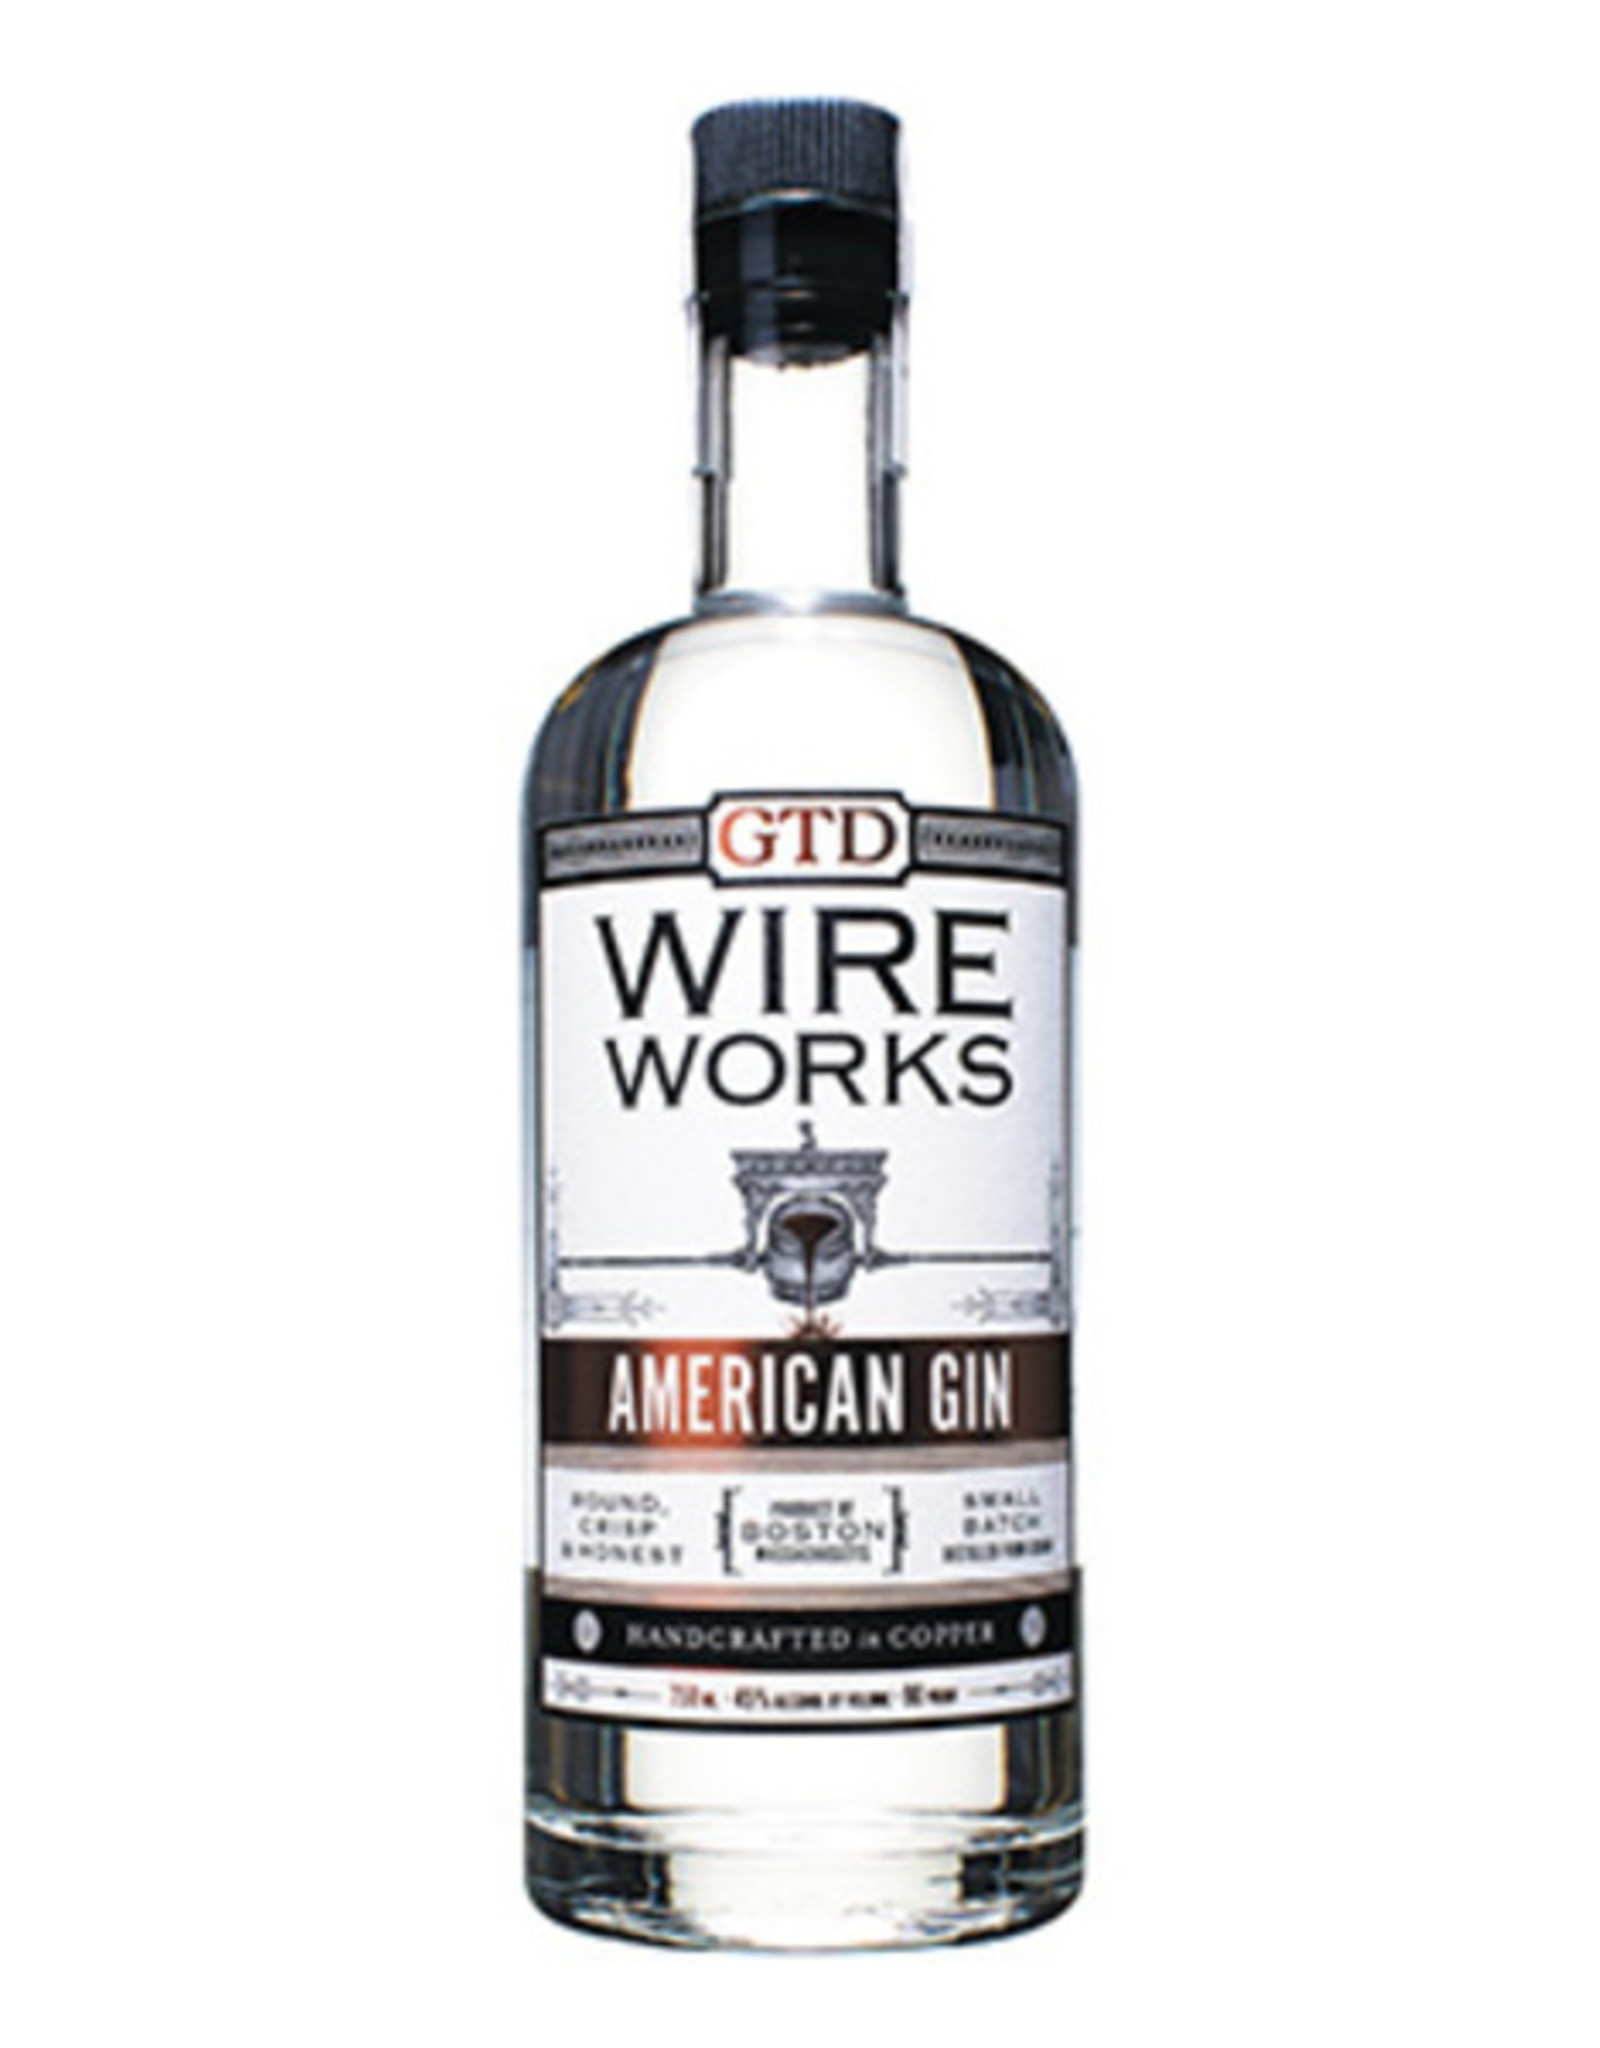 GTD Wire Works American Gin